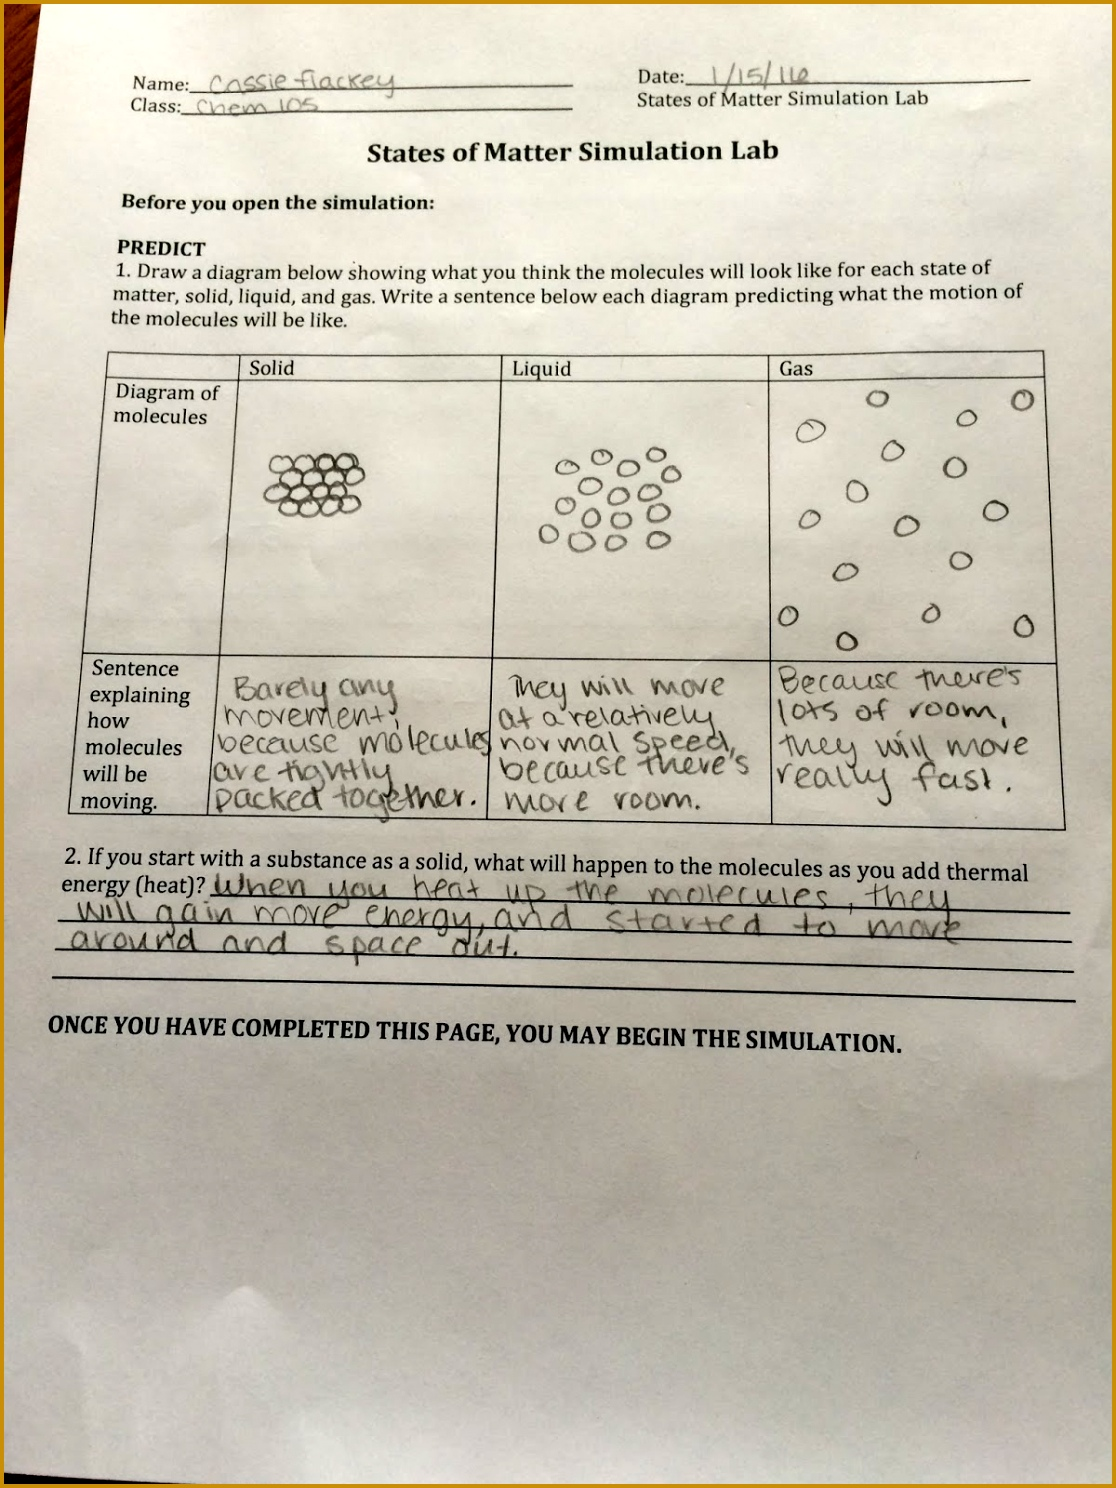 7 Build An Atom Phet Lab Worksheet Answers